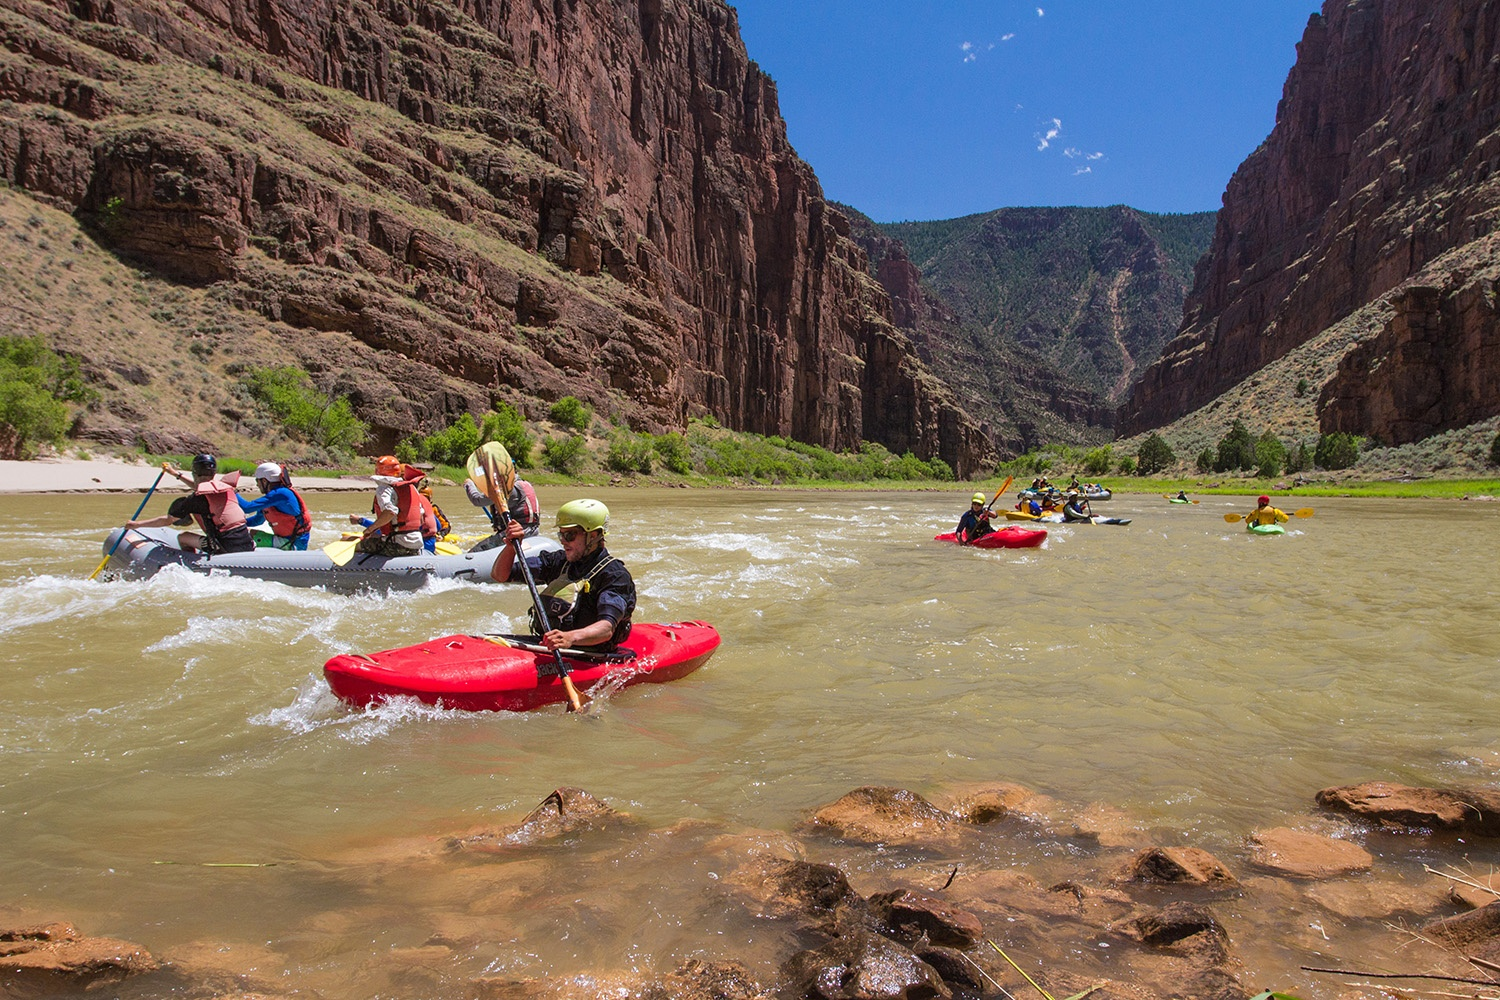 Group paddling in kayaks and boats on a river